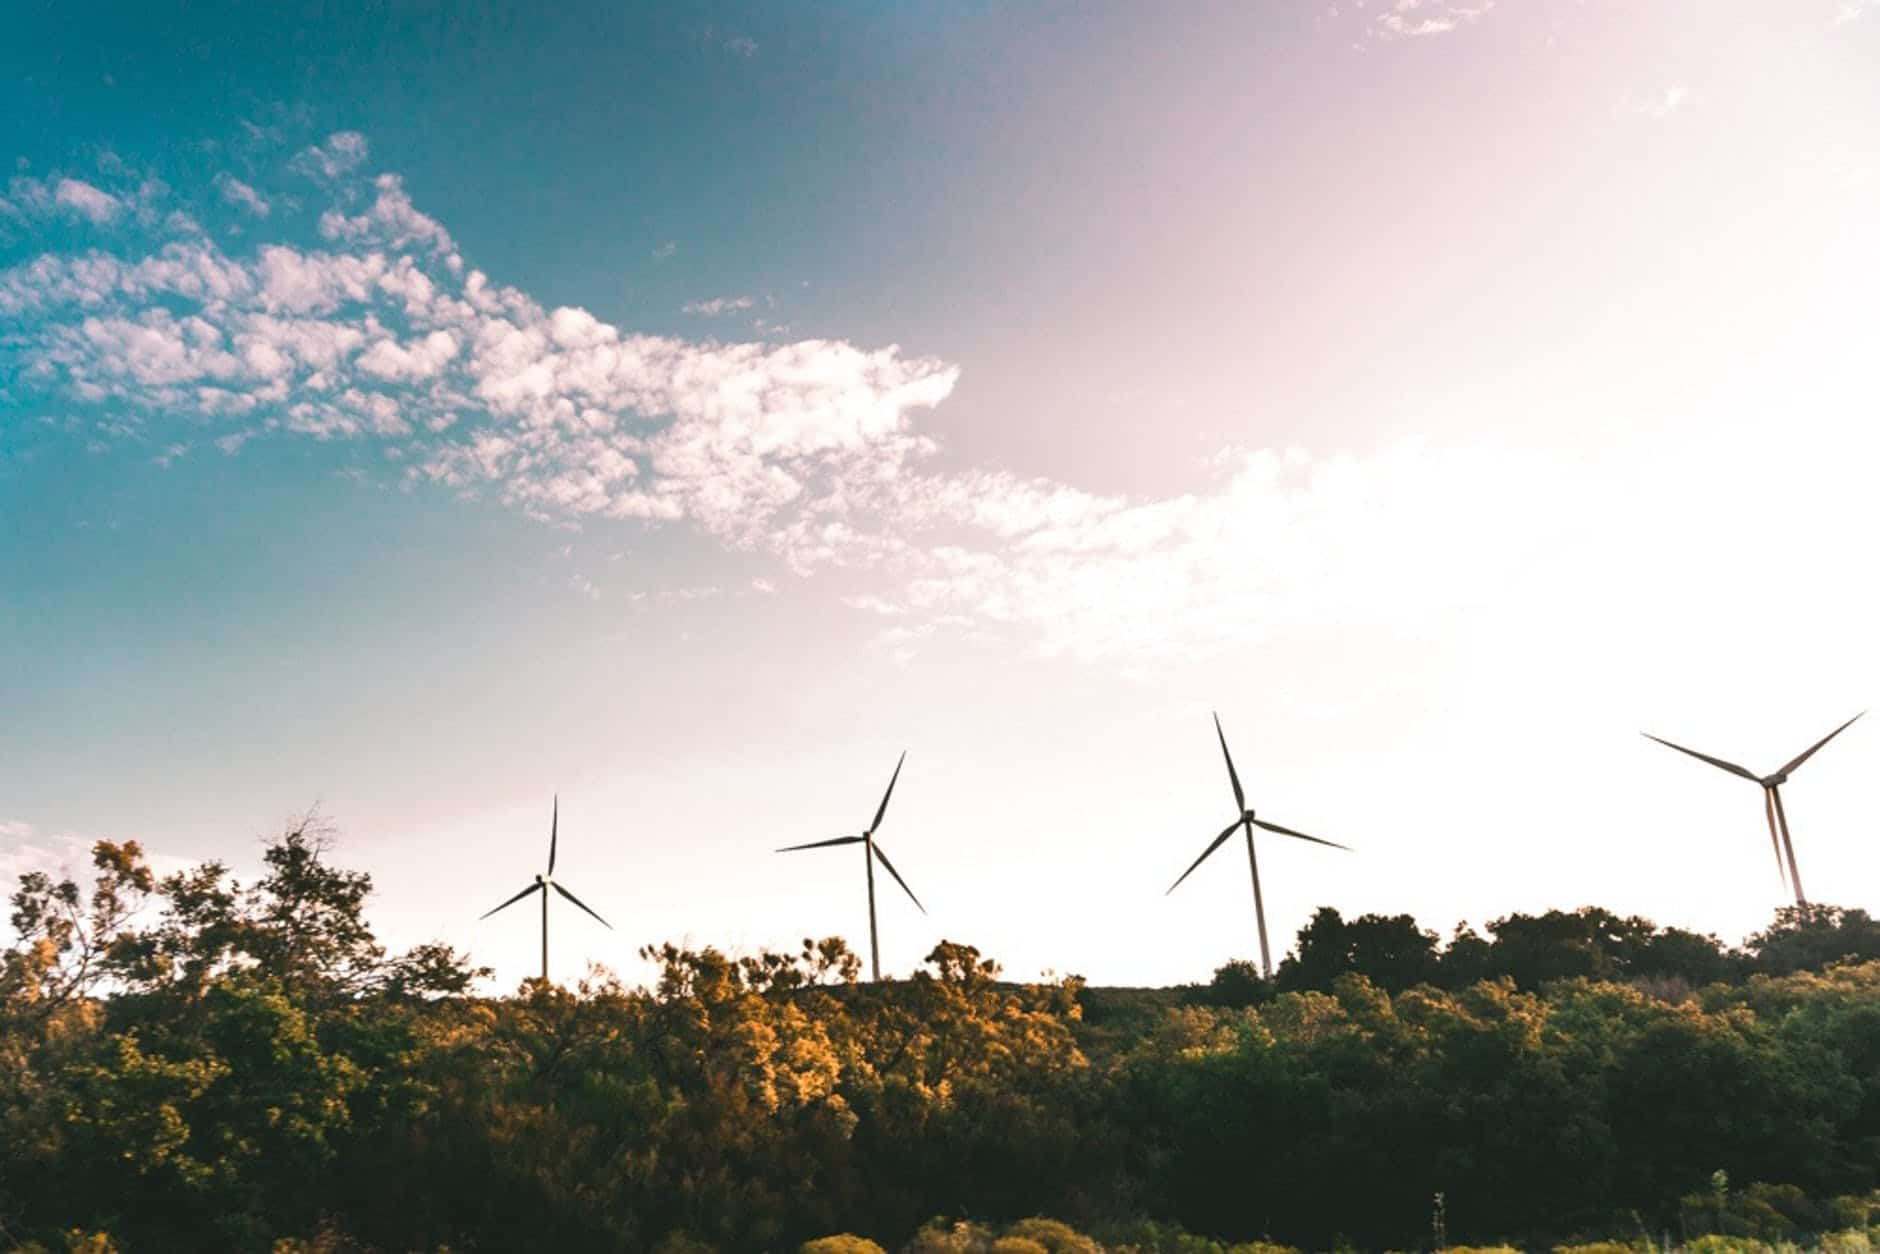 Carbon neutral vs net-zero – what's the difference?